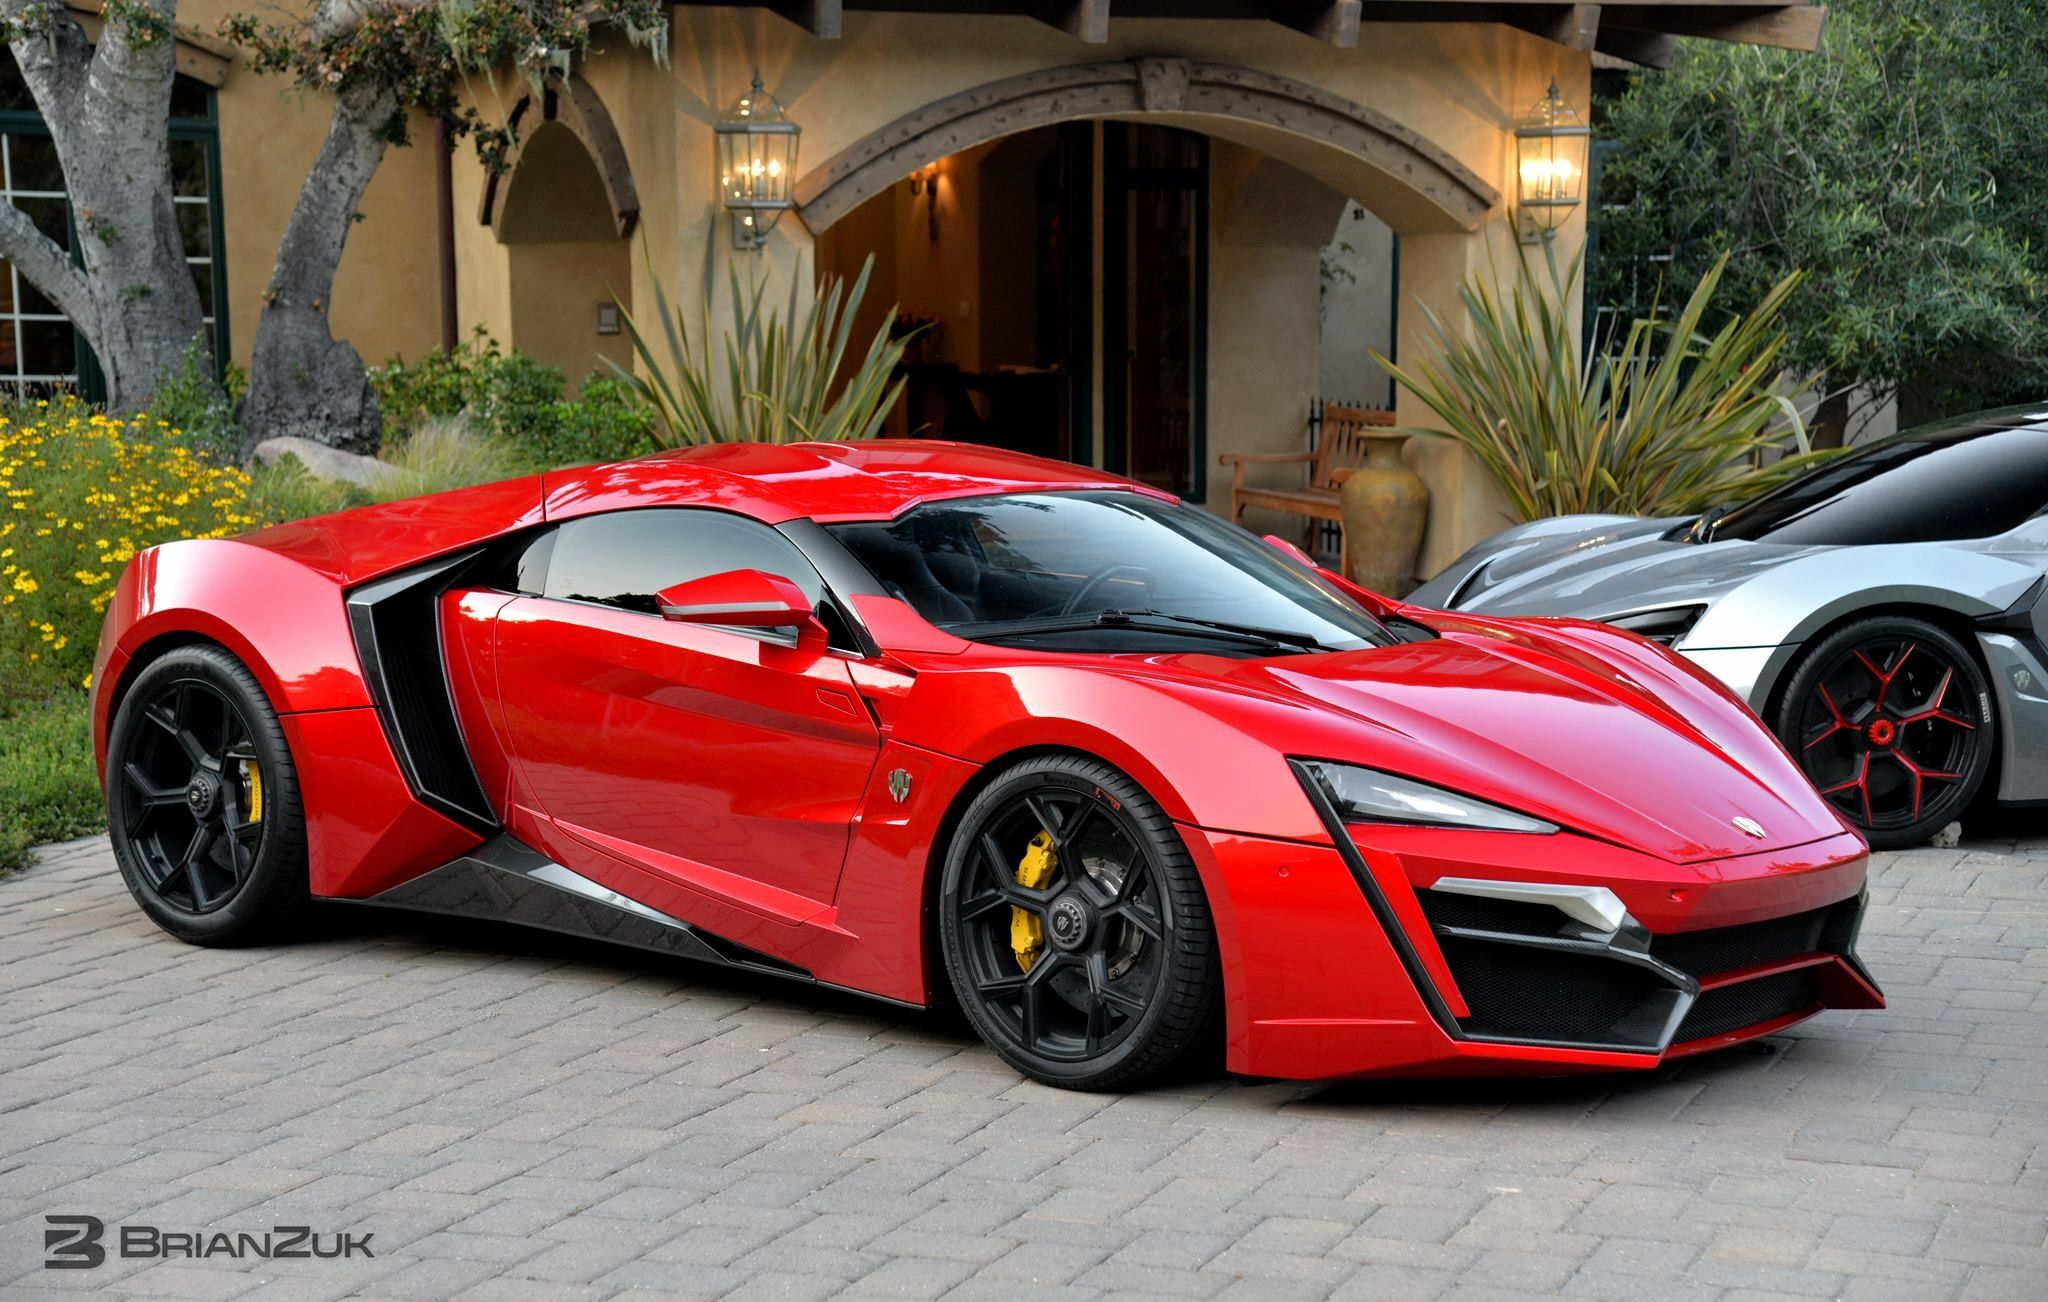 Lykan Hypersport 24 Karat Gold Stitching Jewels In The Headlights Holographic Display System Most Expensive Luxury Cars Most Expensive Car Top Luxury Cars